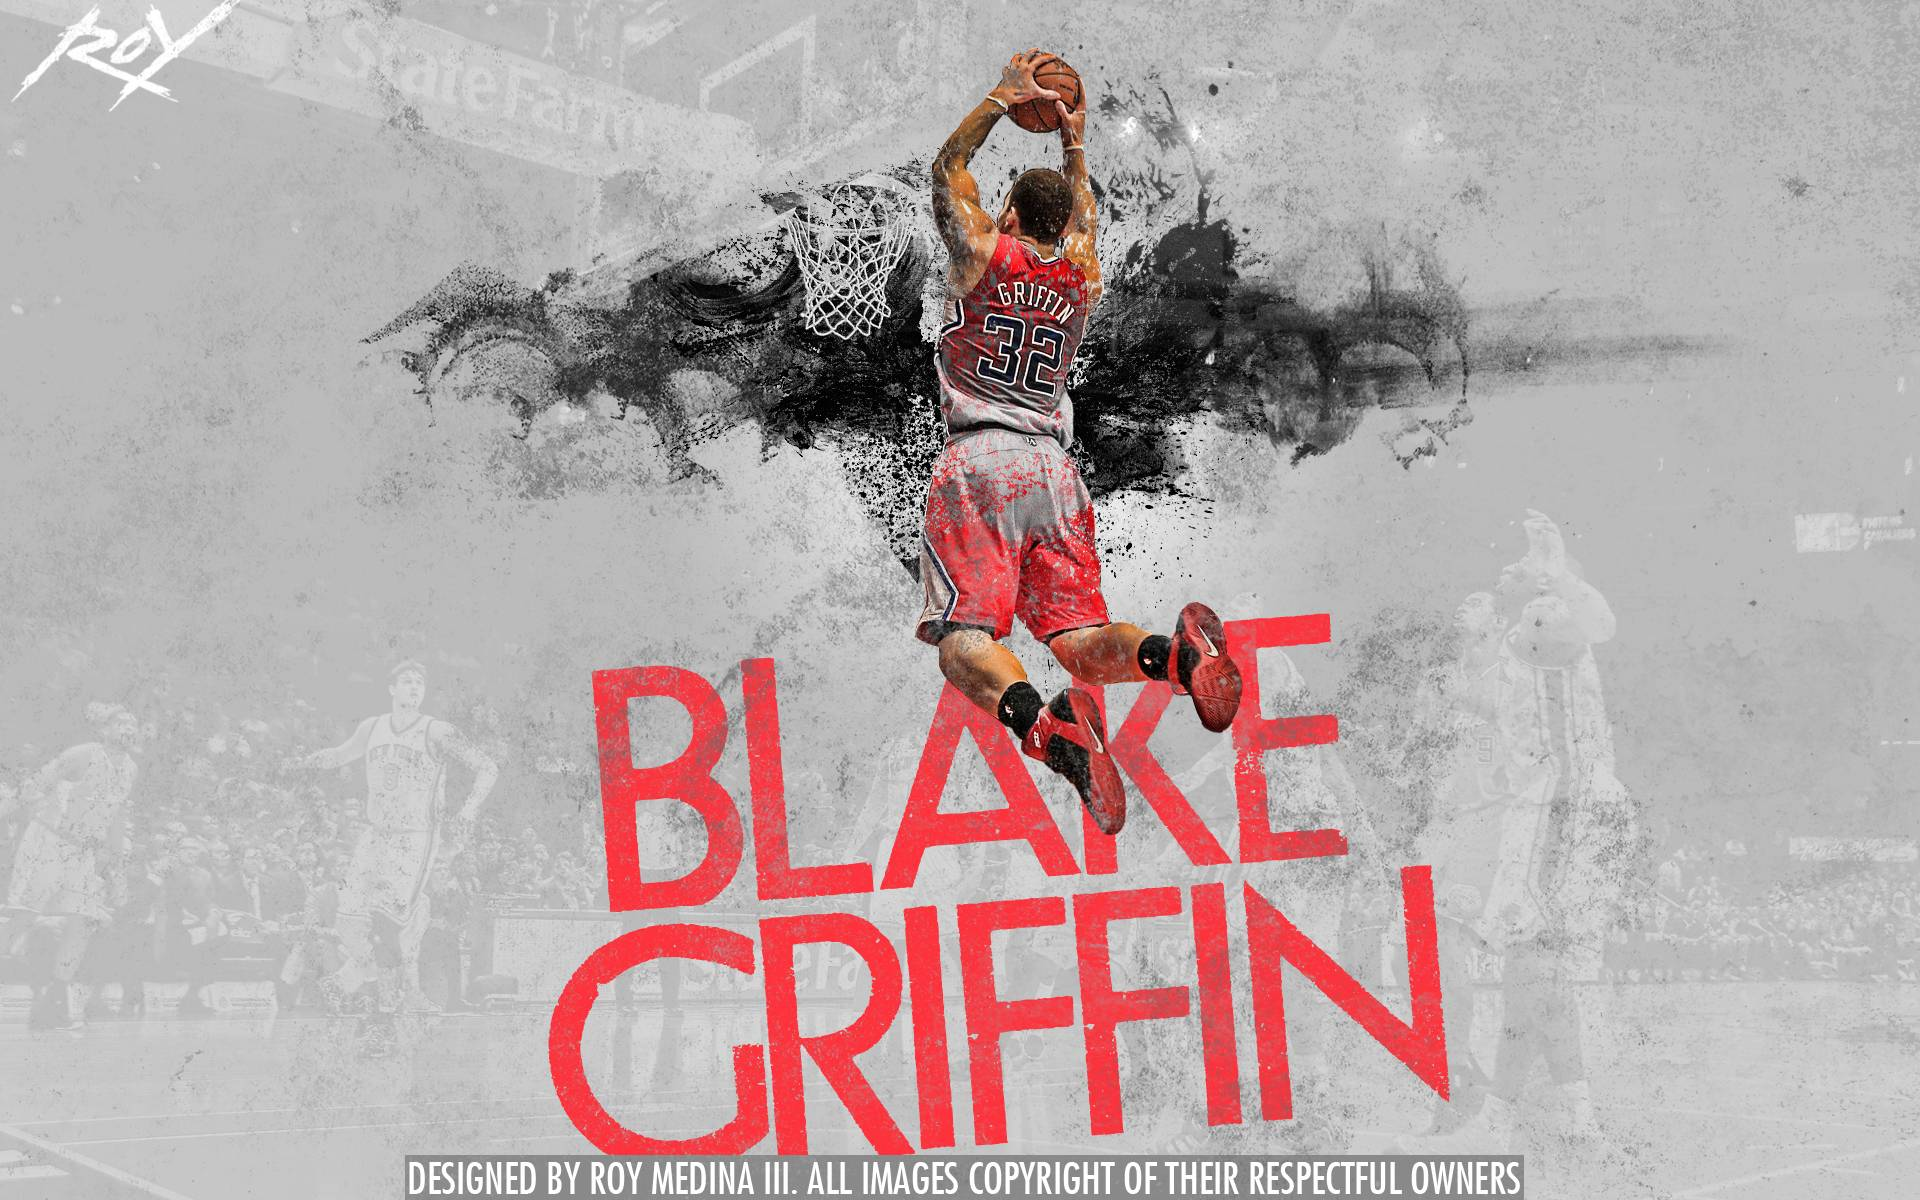 blake griffin wallpaper - photo #8